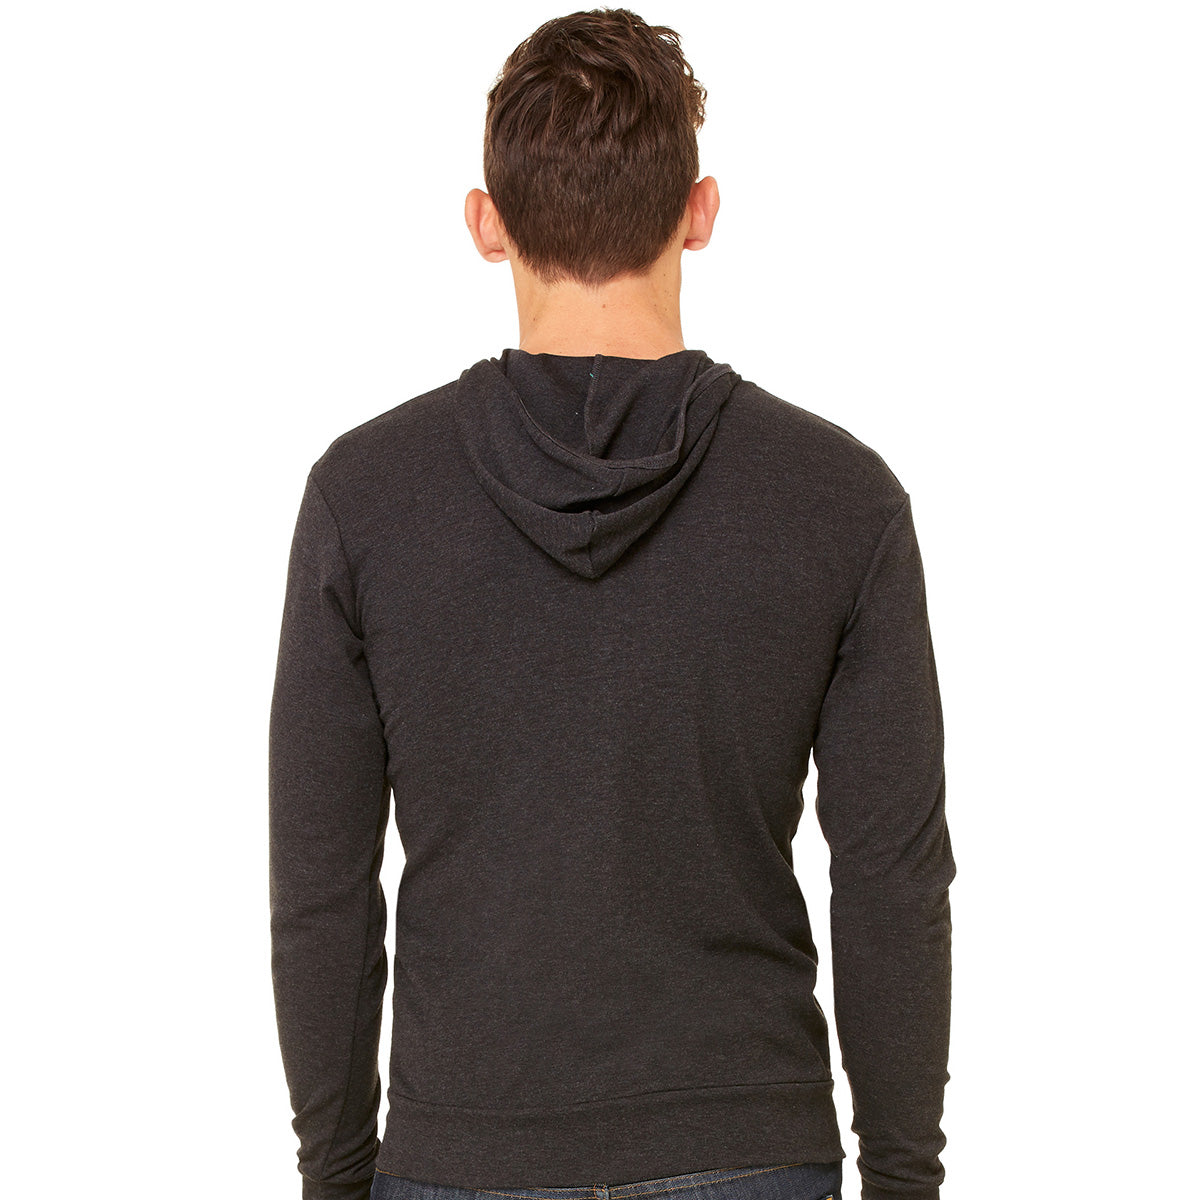 Upcycled Fader Zip Hoodie - Charcoal Black